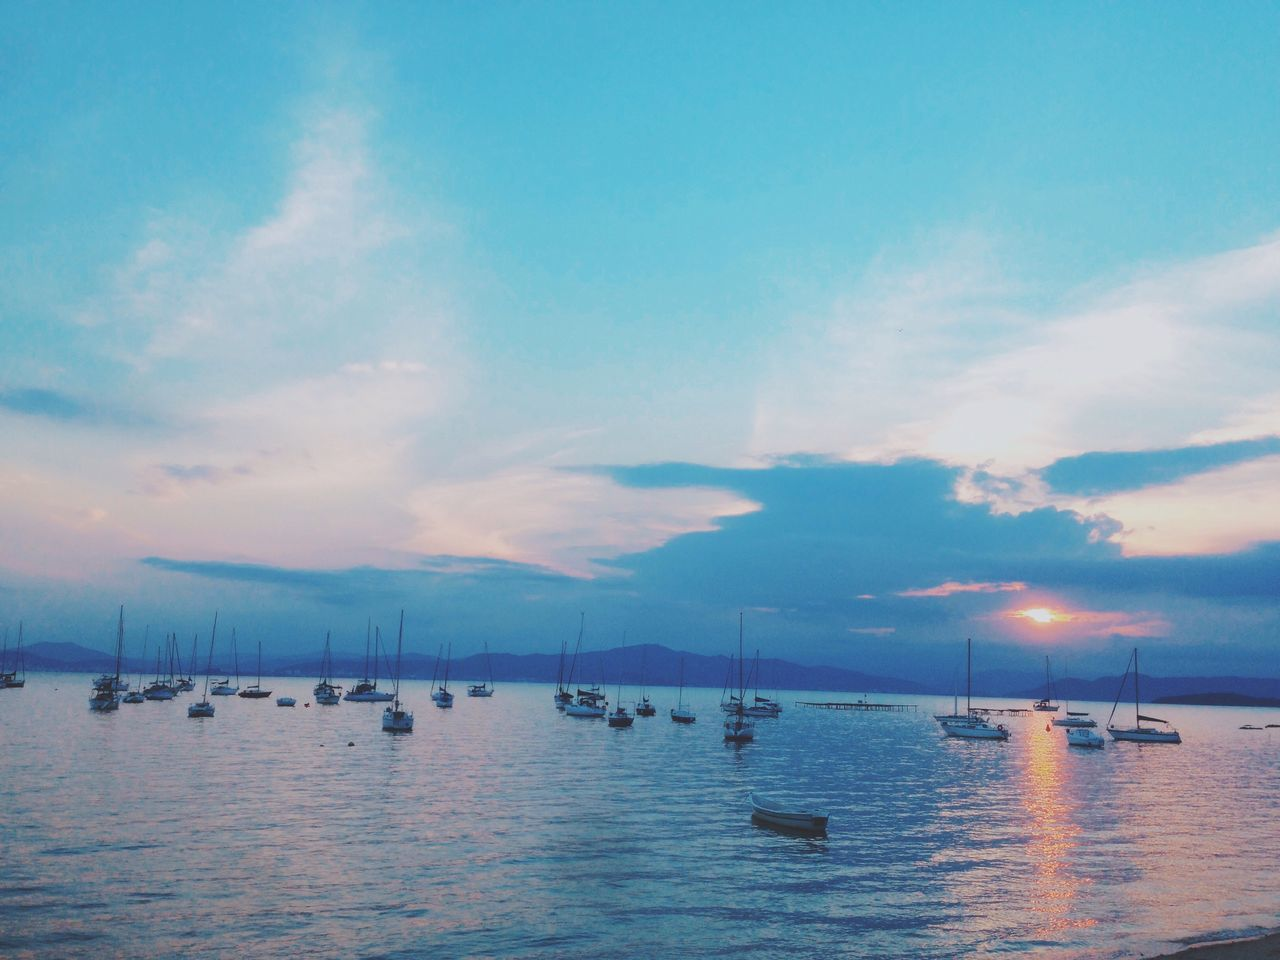 water, sea, sky, beauty in nature, nautical vessel, nature, scenics, cloud - sky, outdoors, waterfront, tranquility, sunset, transportation, tranquil scene, no people, moored, day, jet boat